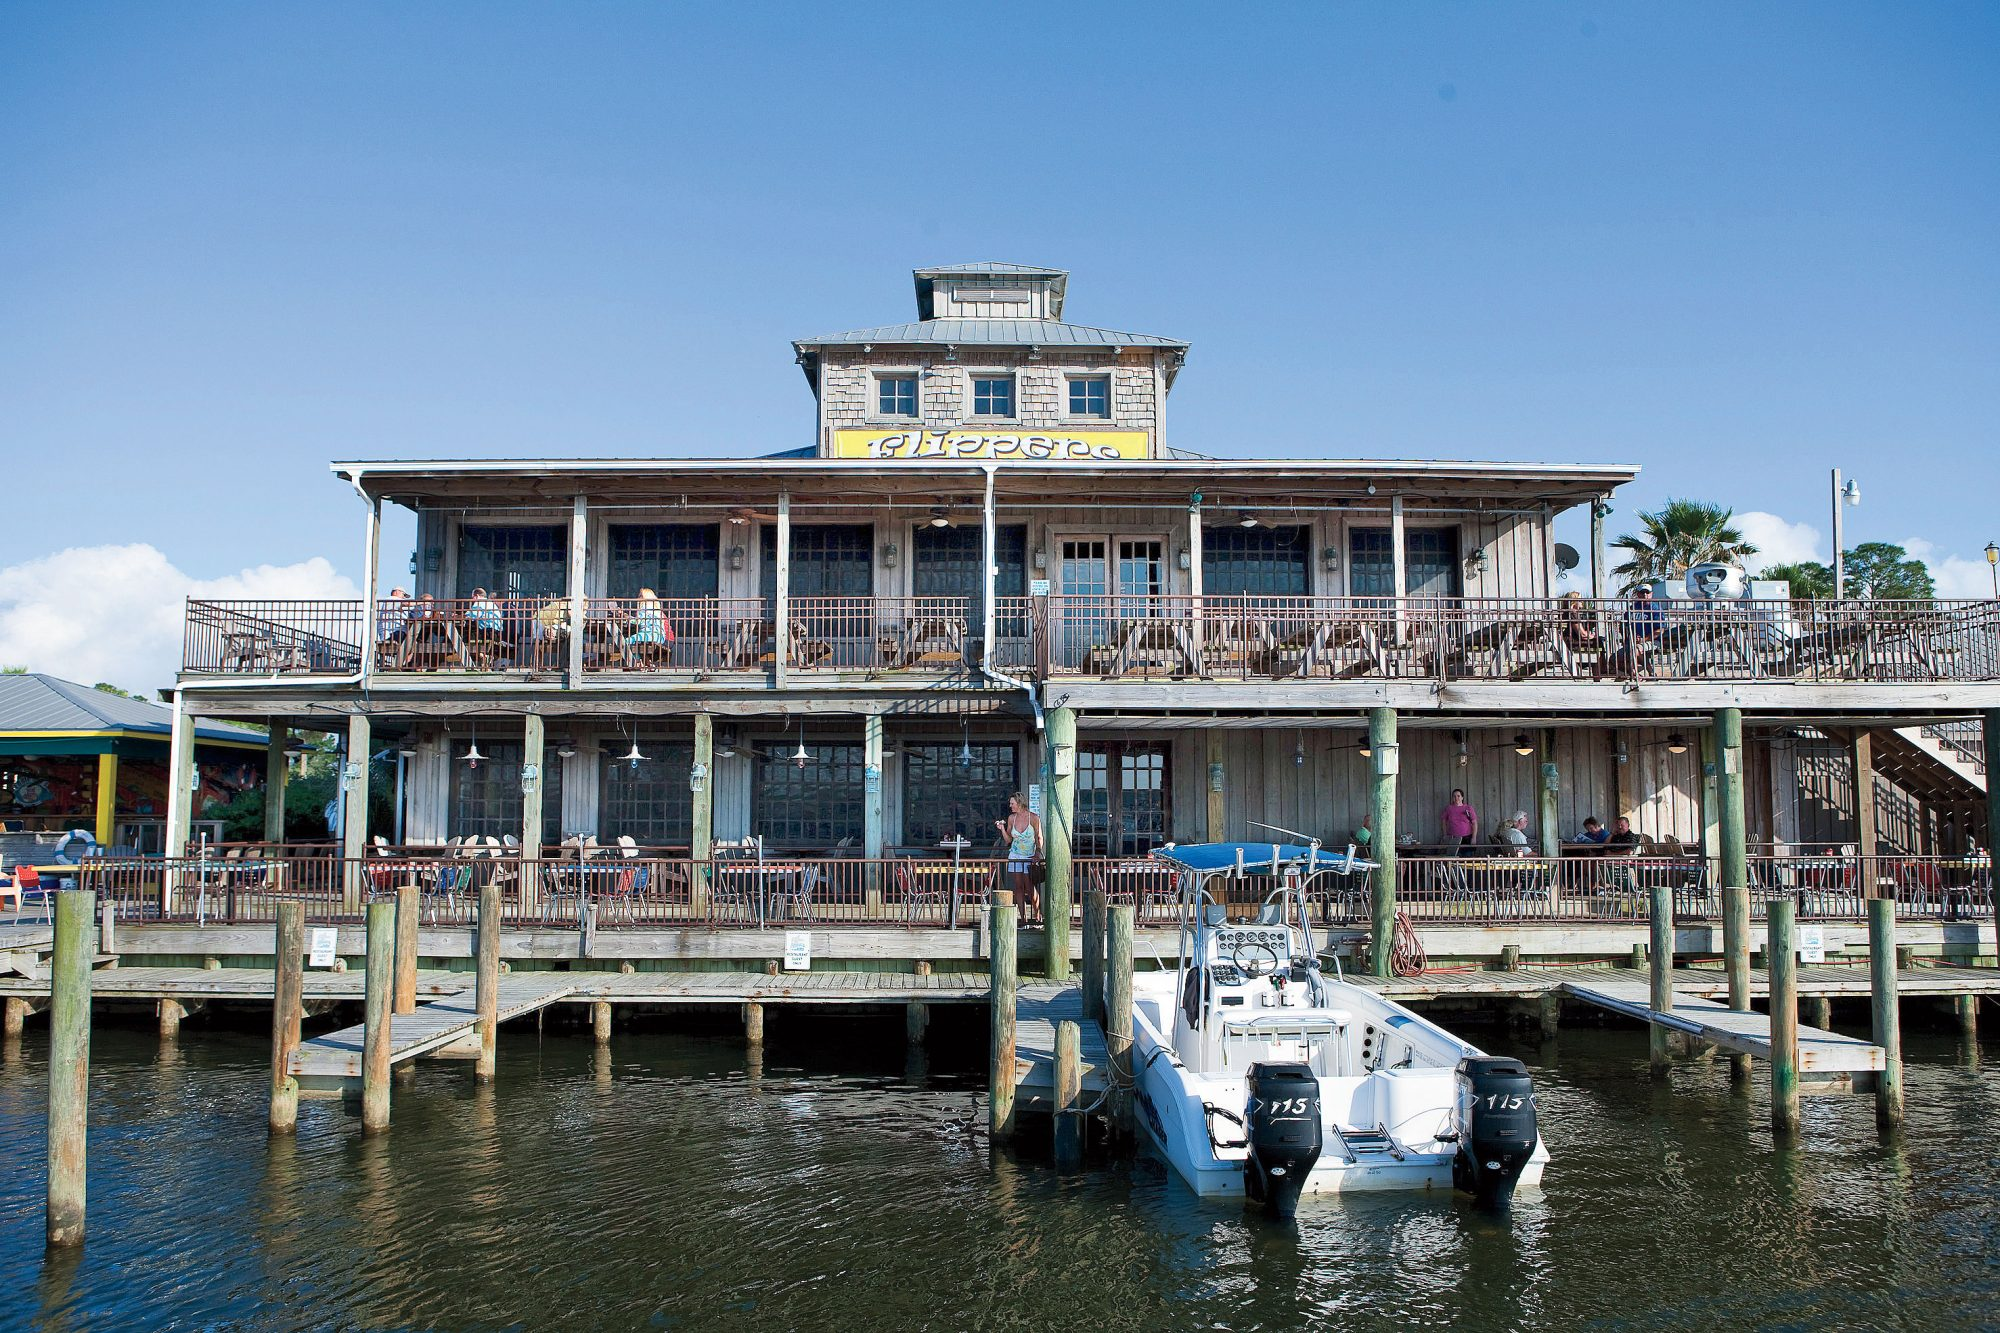 Flippers Seafood & Oyster Bar